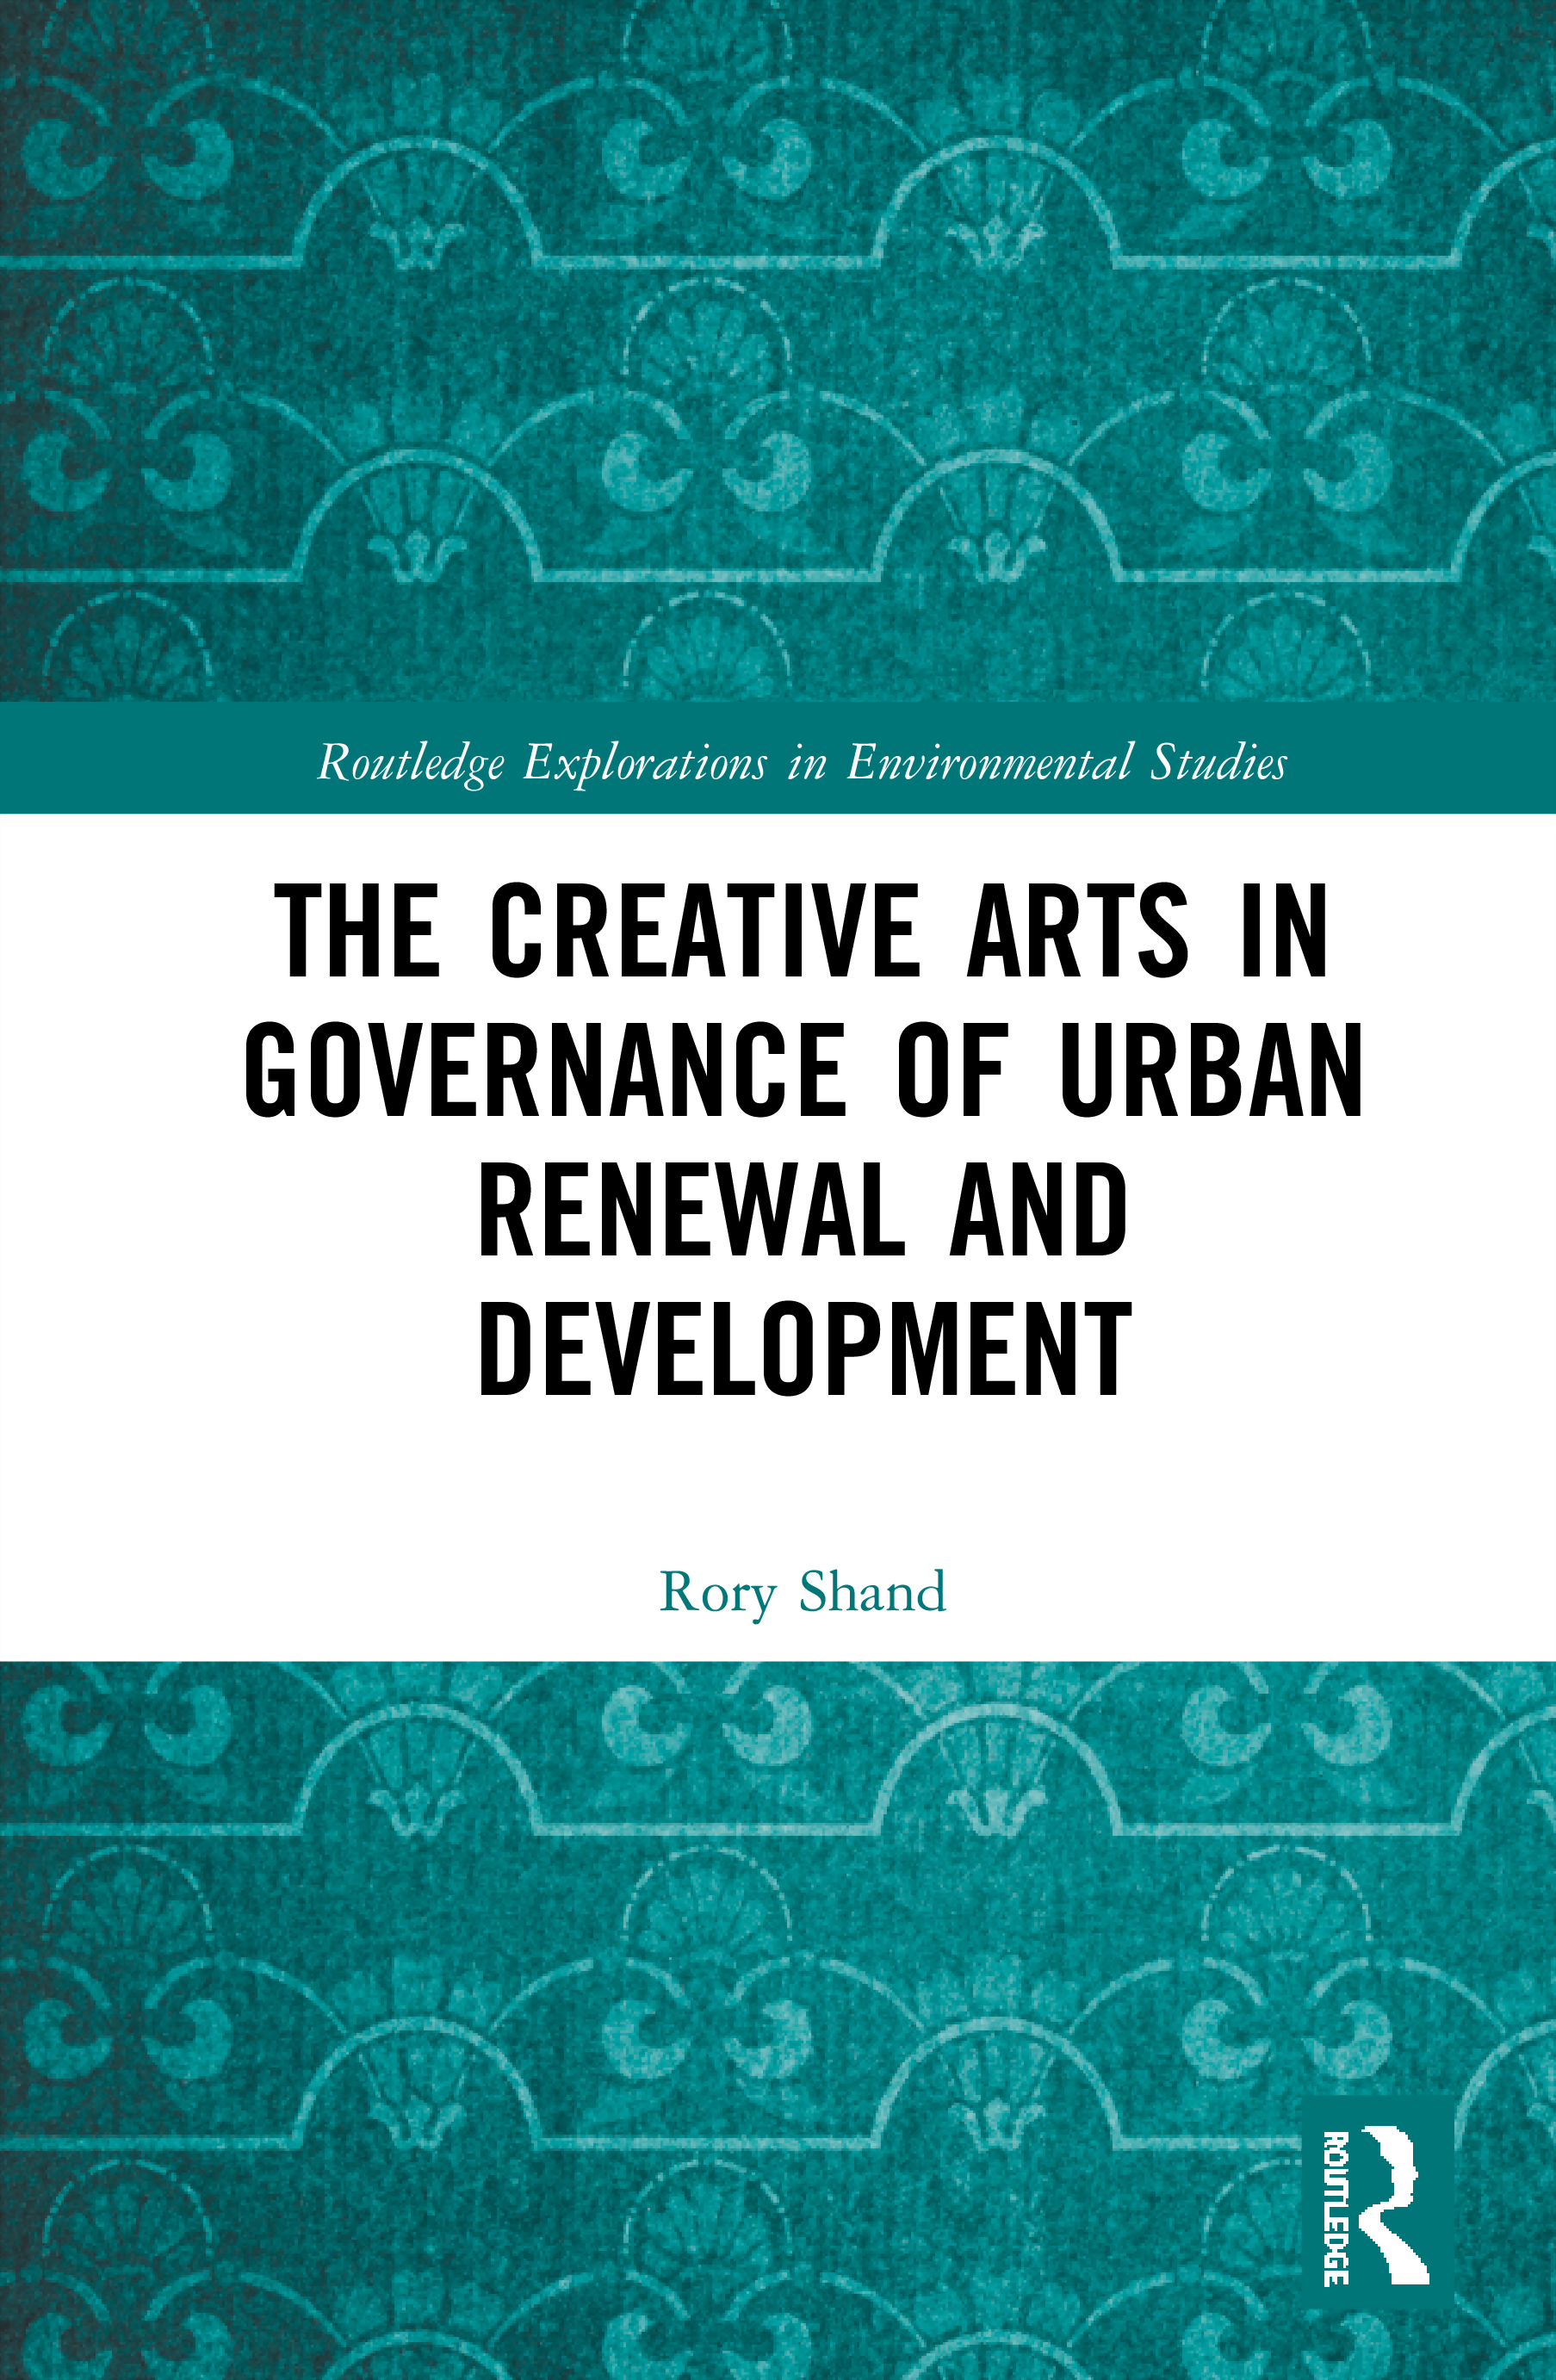 The Creative Arts in Governance of Urban Renewal and Development book cover